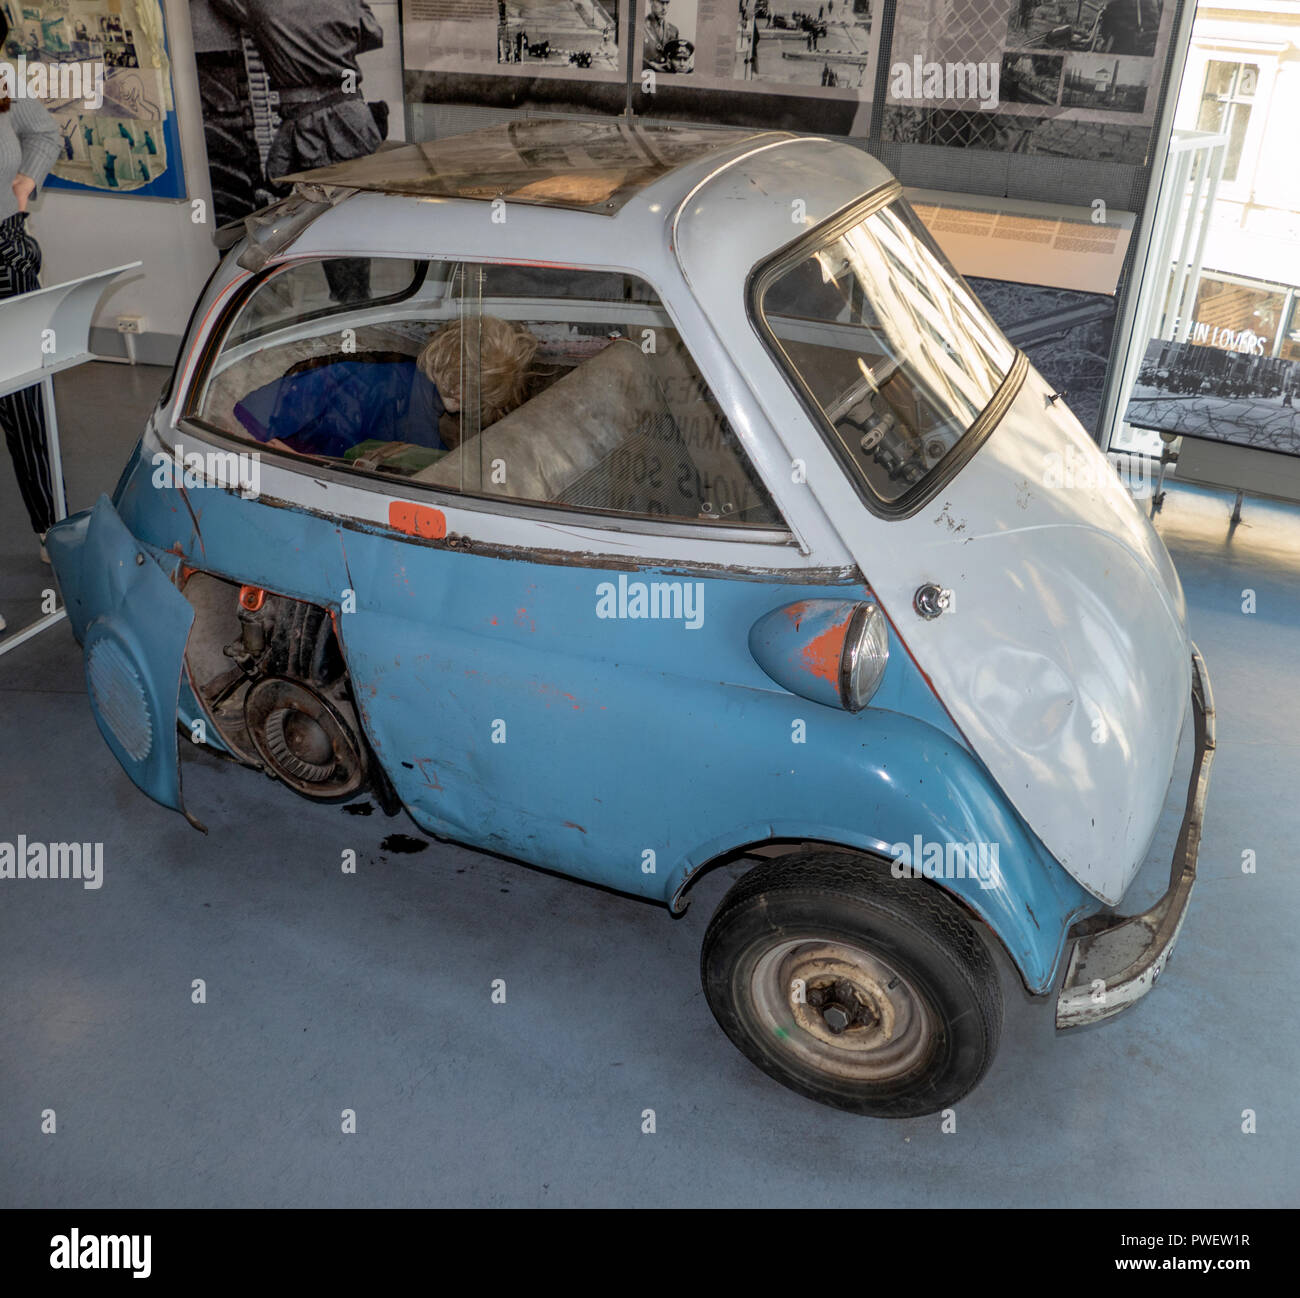 This BMW Isetta was used to smuggle nine people across the Berlin Wall, from the East to the West side. - Stock Image